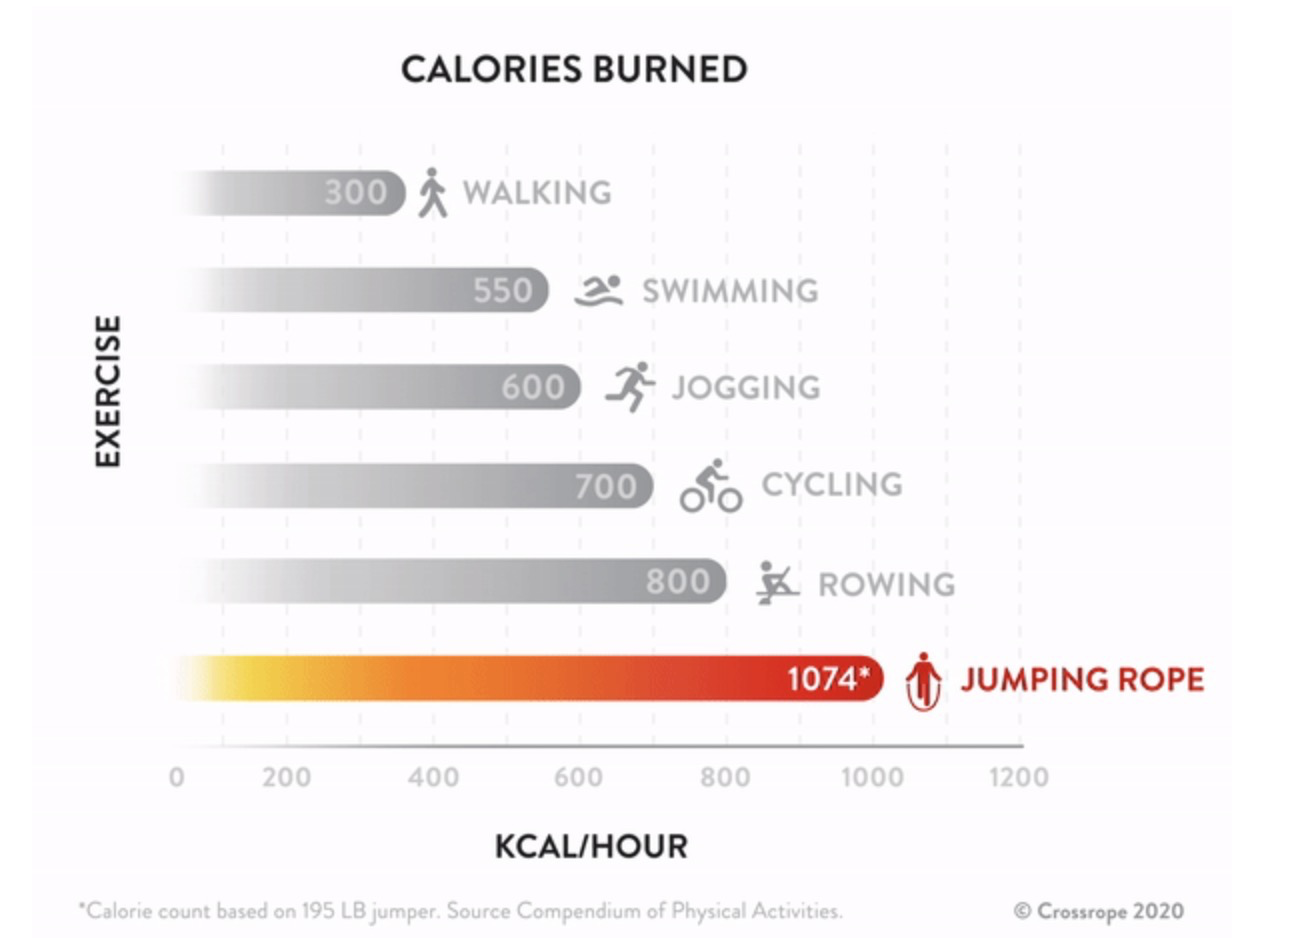 Rope jumping vs other exercise calorie burnt